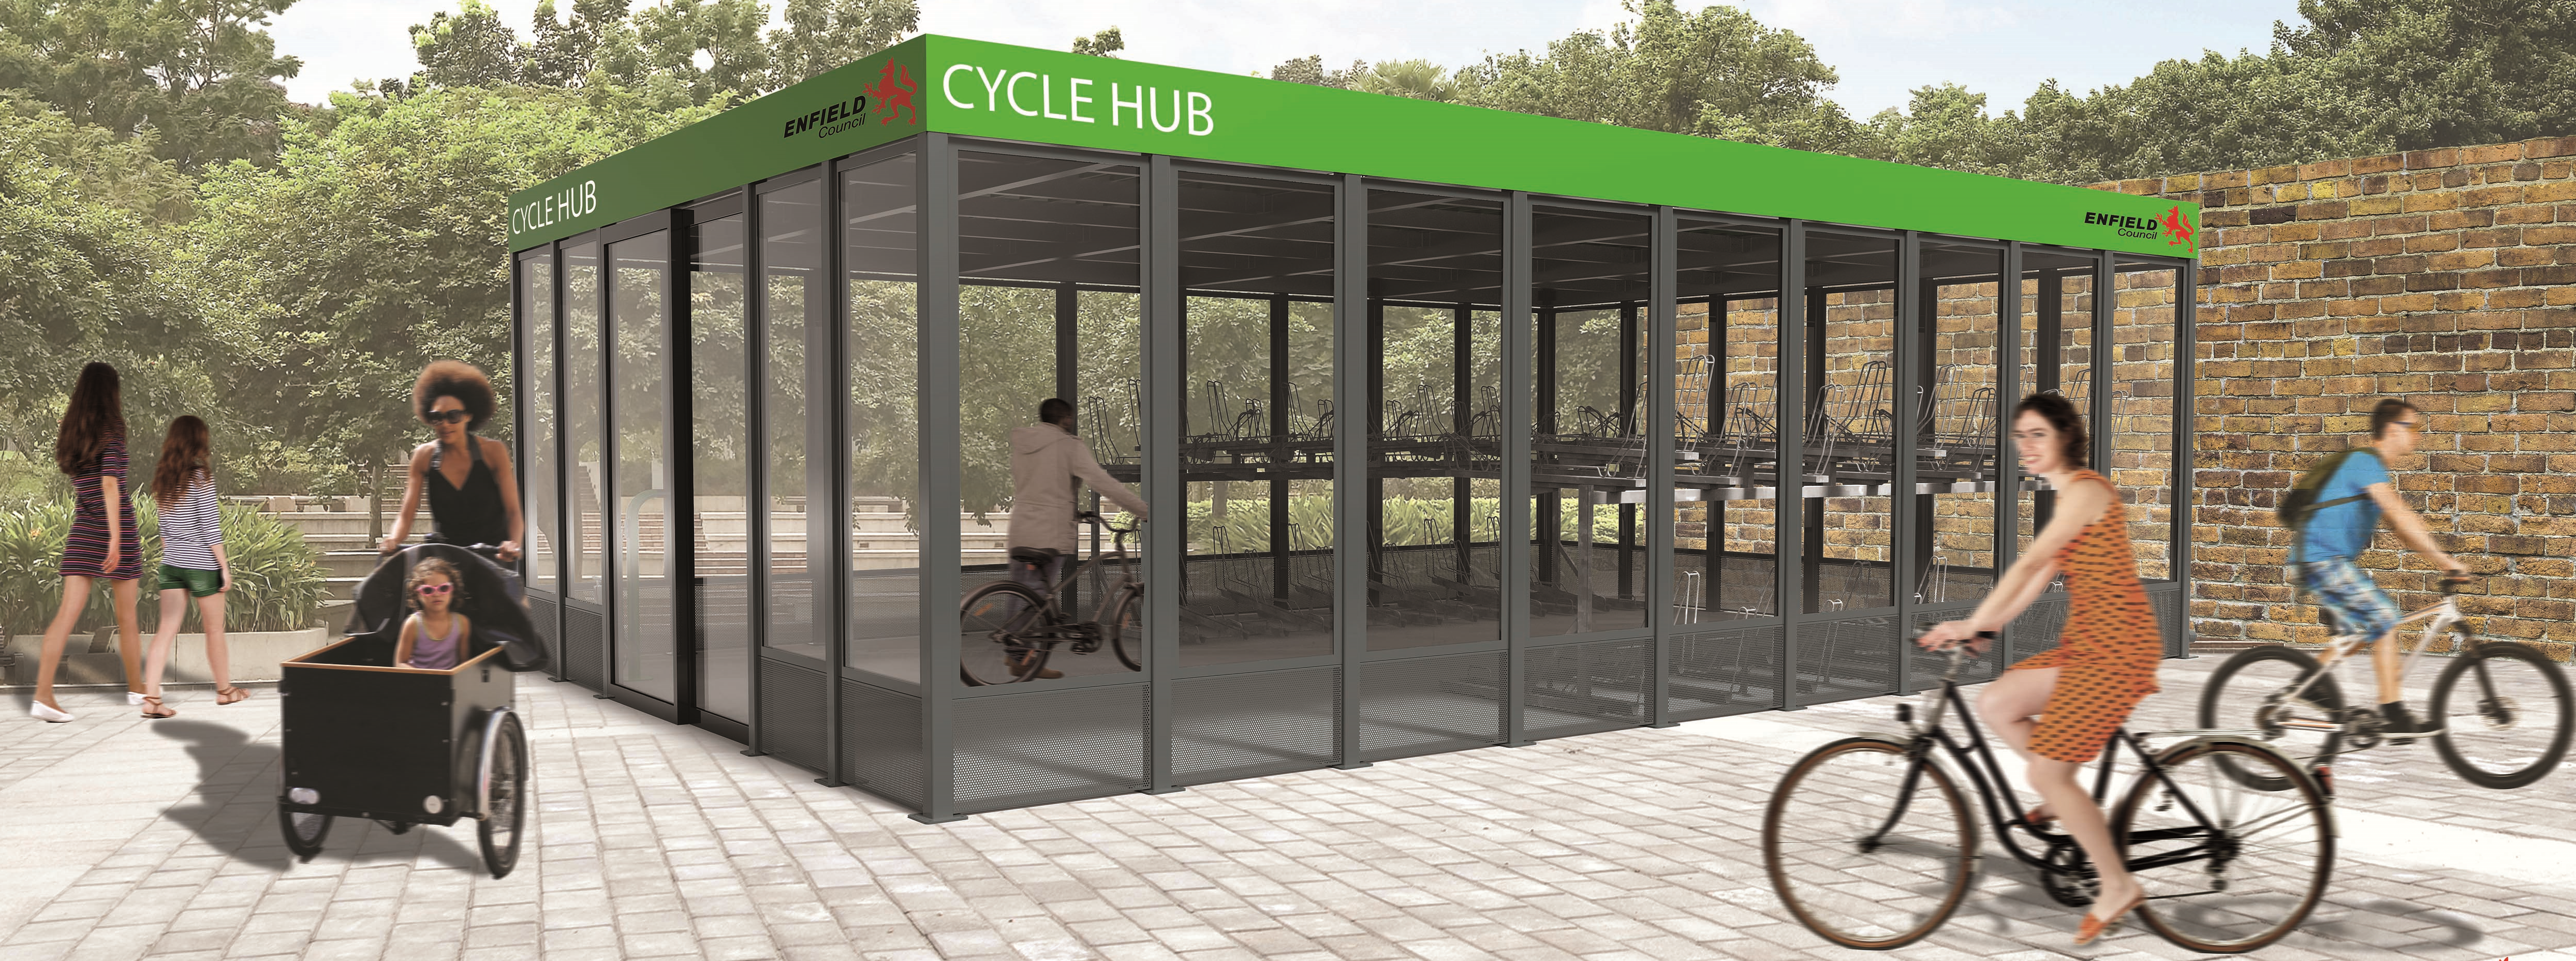 Cycle hub secure cycle parking at stations